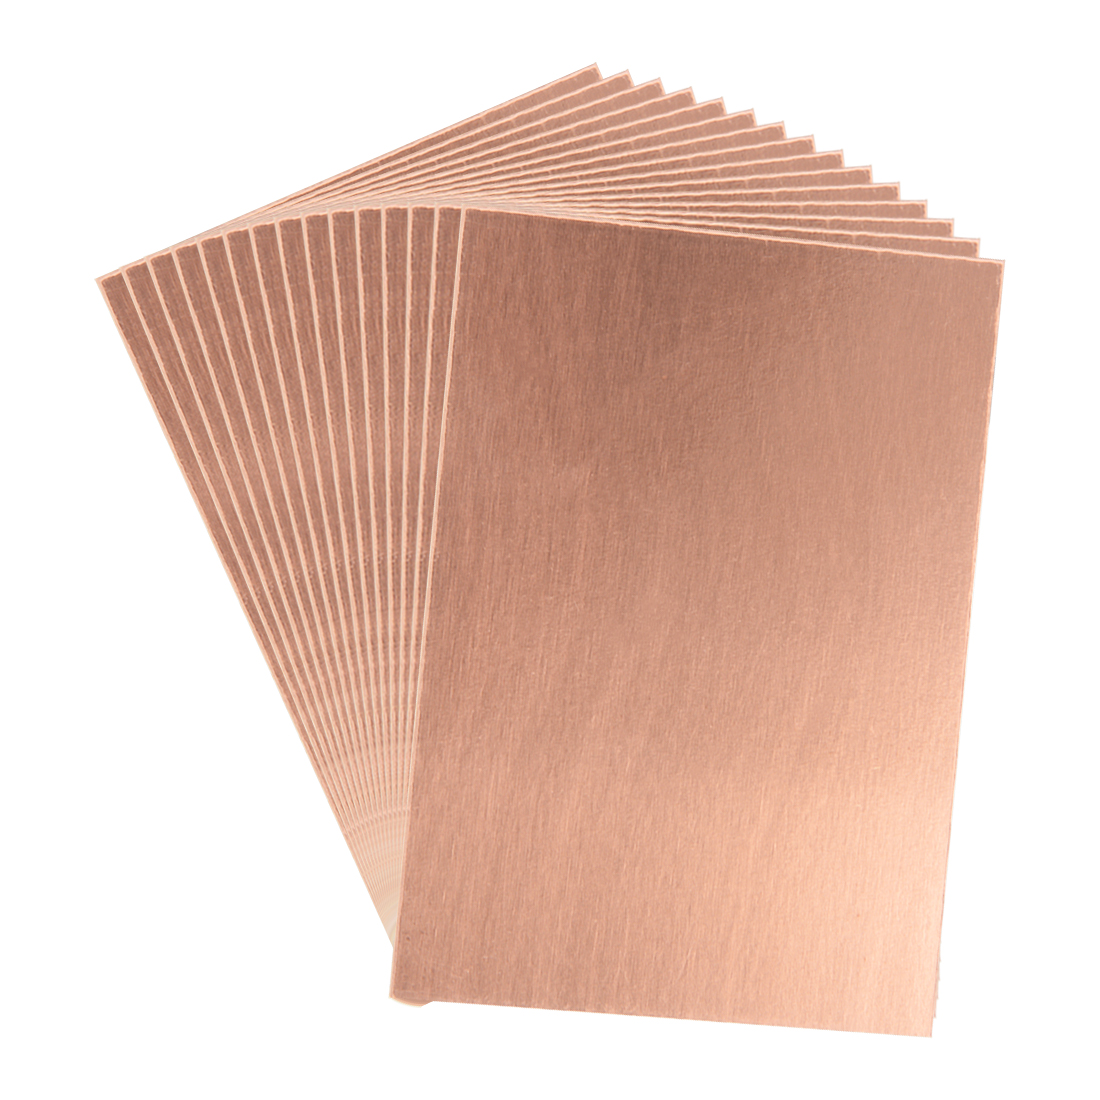 Uxcell 15pcs Universal PCB Board 7X10cm Single Sided Copper Clad Laminate PCB Circuit Board 7x100mm Brown Single Sided Board